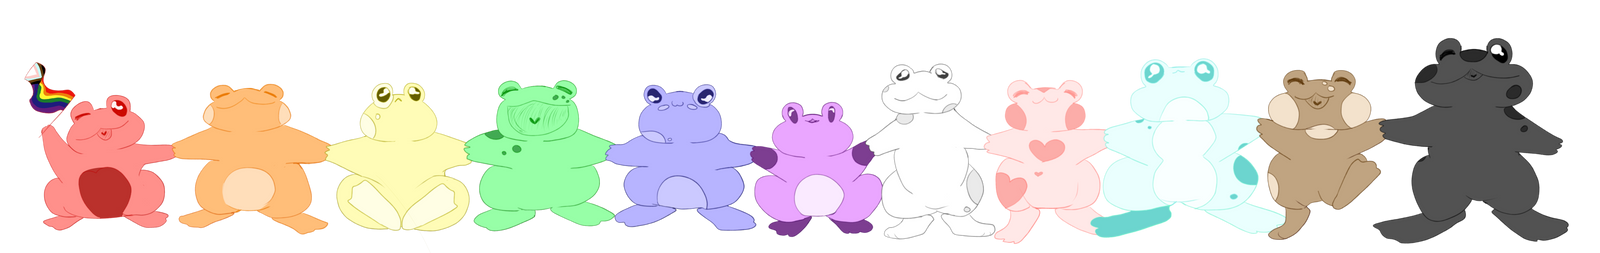 just a whole lotta gay frogs